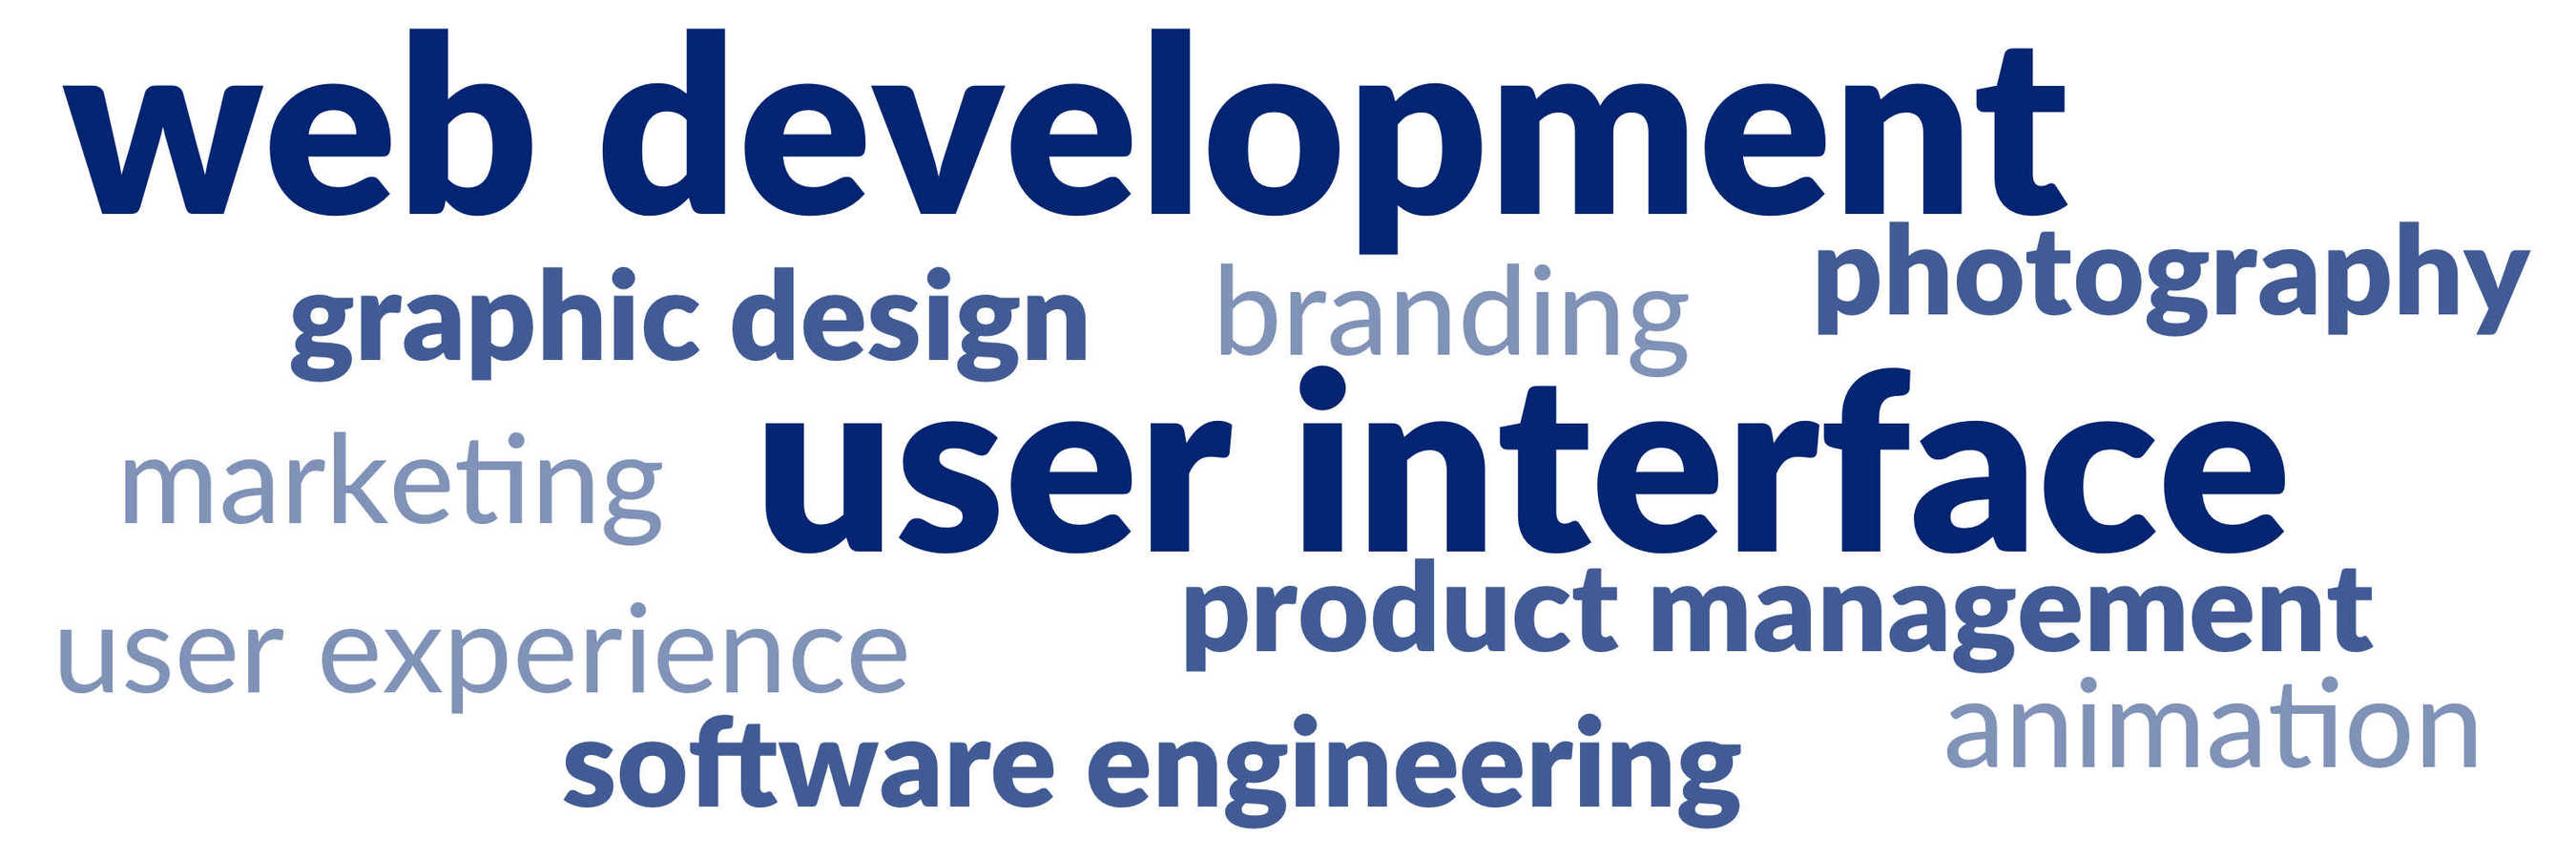 graphic design, web development, product management, user interface, user experience, branding, photography, animation, marketing, software engineering